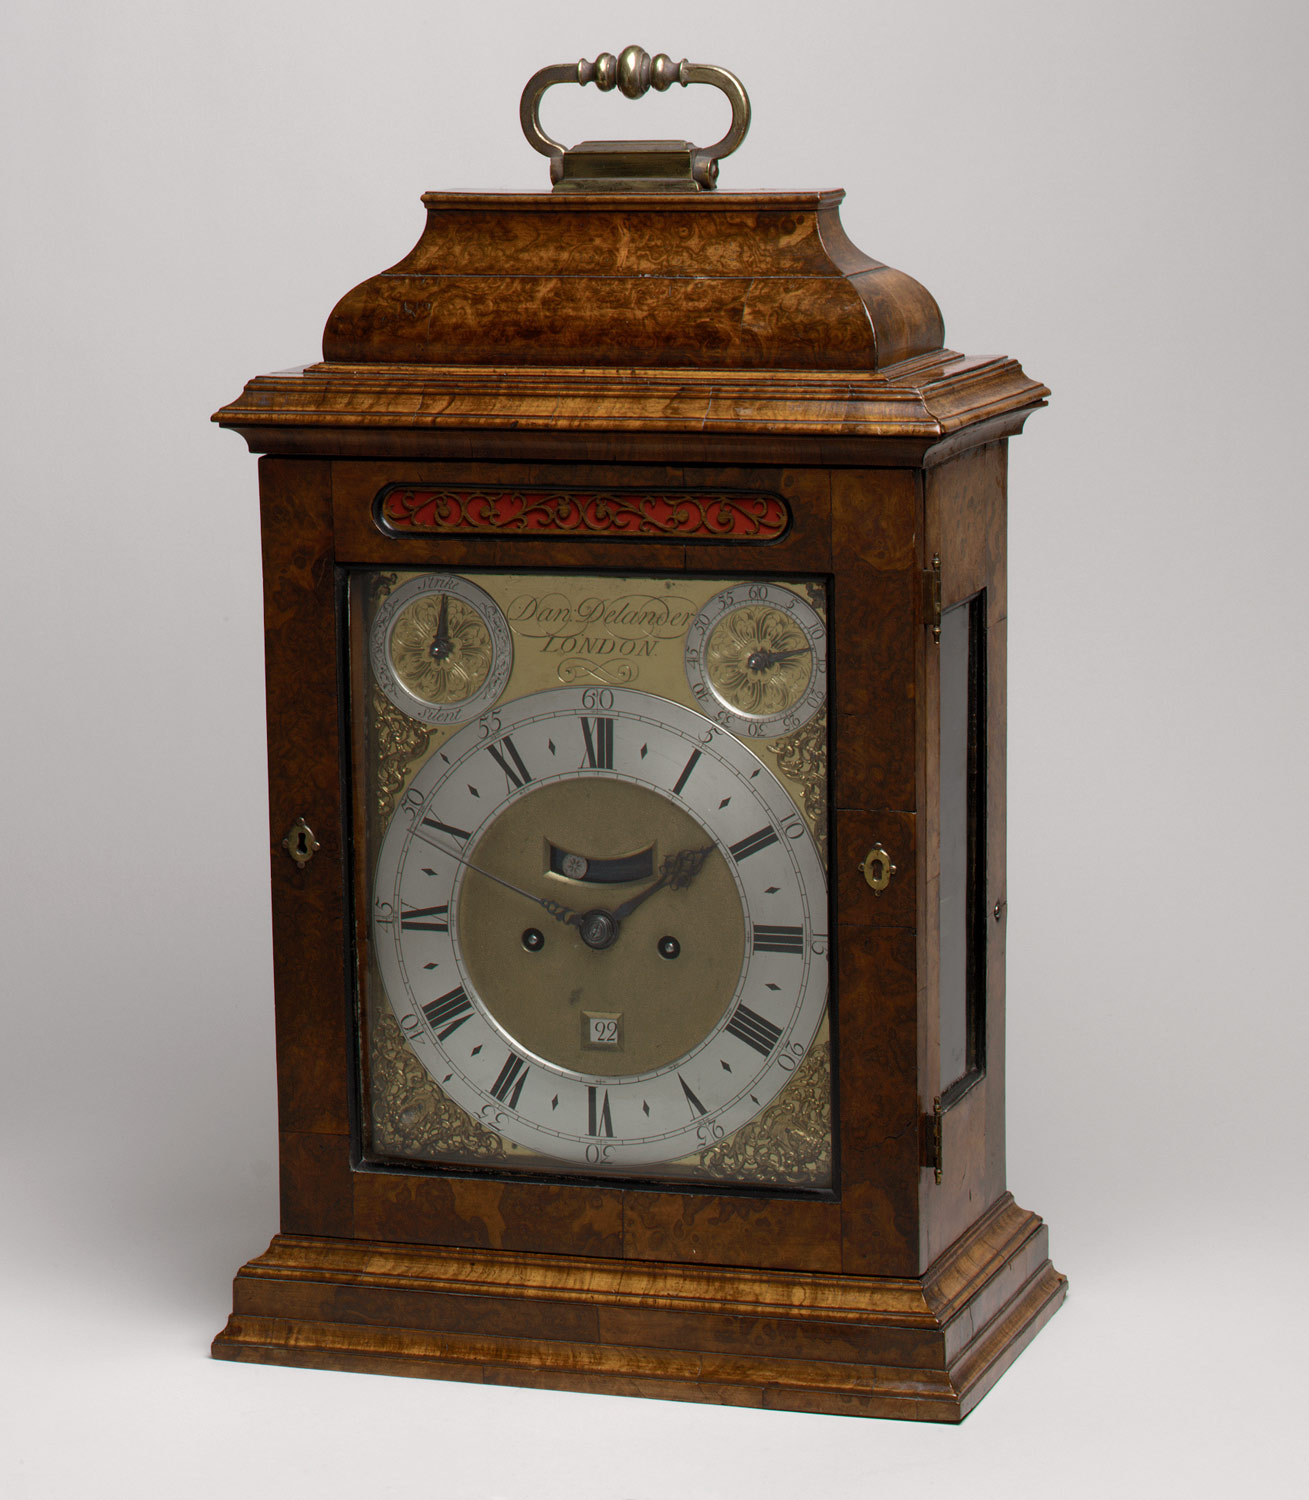 Table or bracket clock with calendar